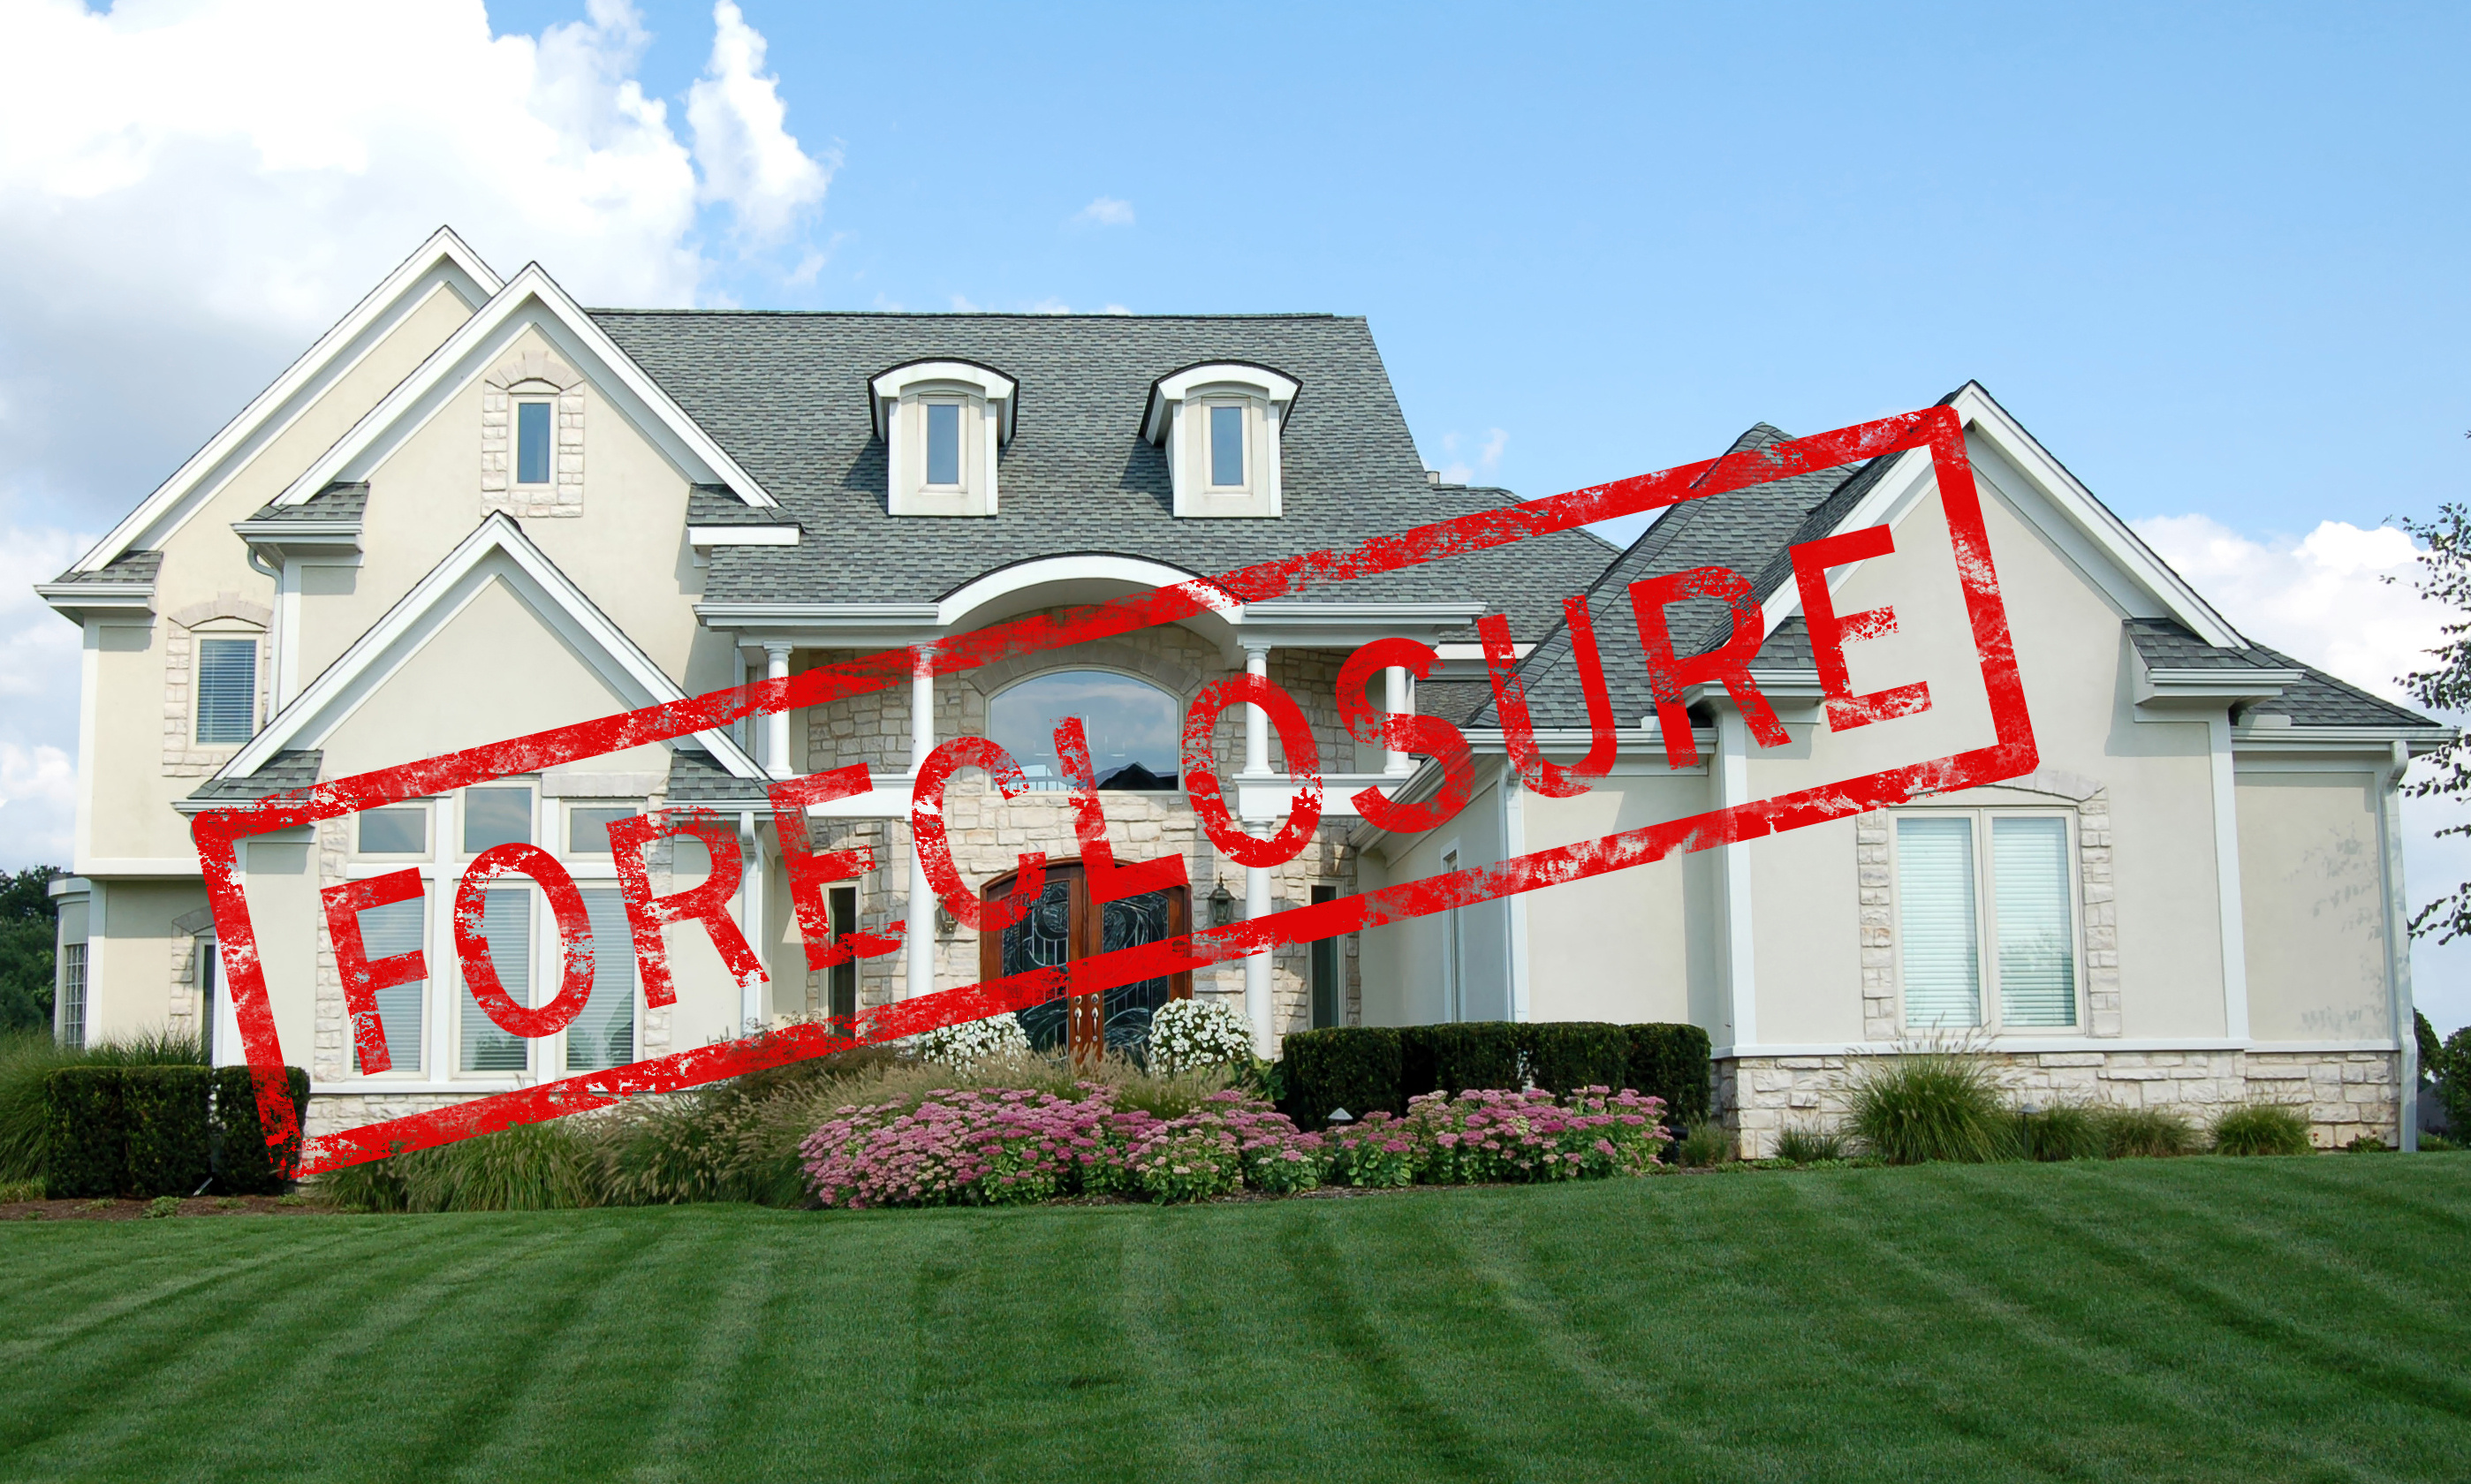 Call Clark Lunde to discuss valuations of Riverside foreclosures